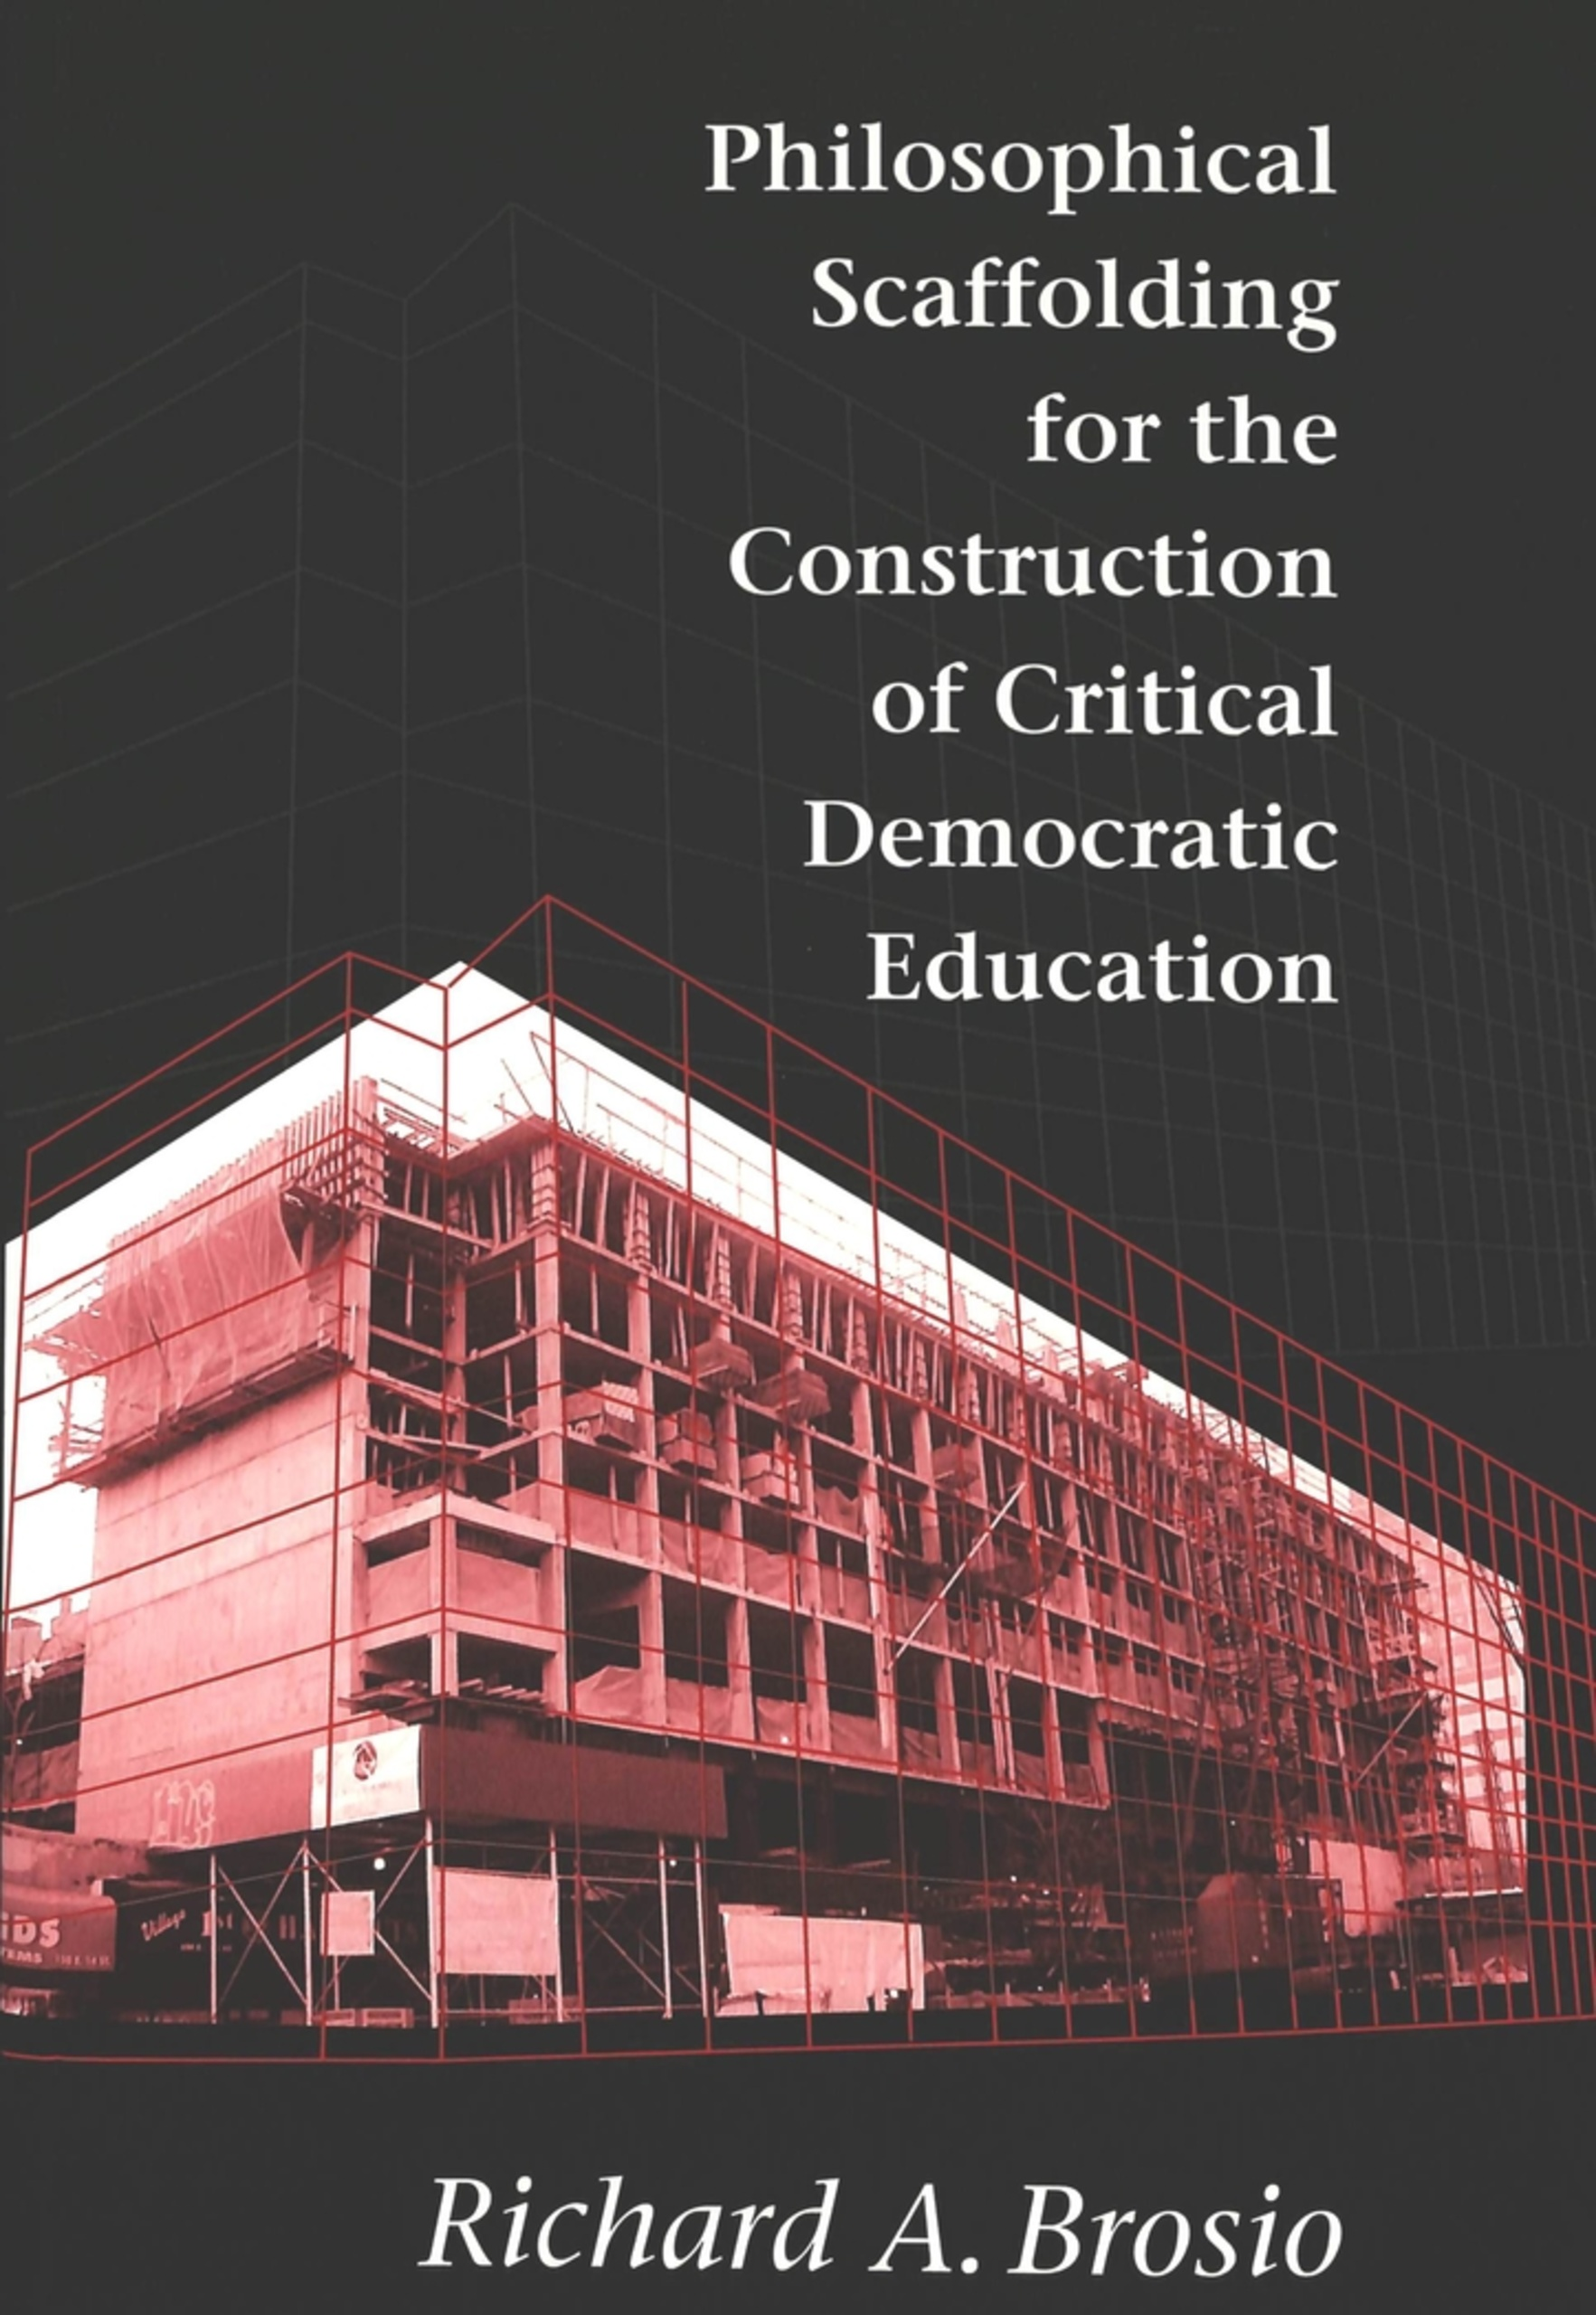 Title: Philosophical Scaffolding for the Construction of Critical Democratic Education